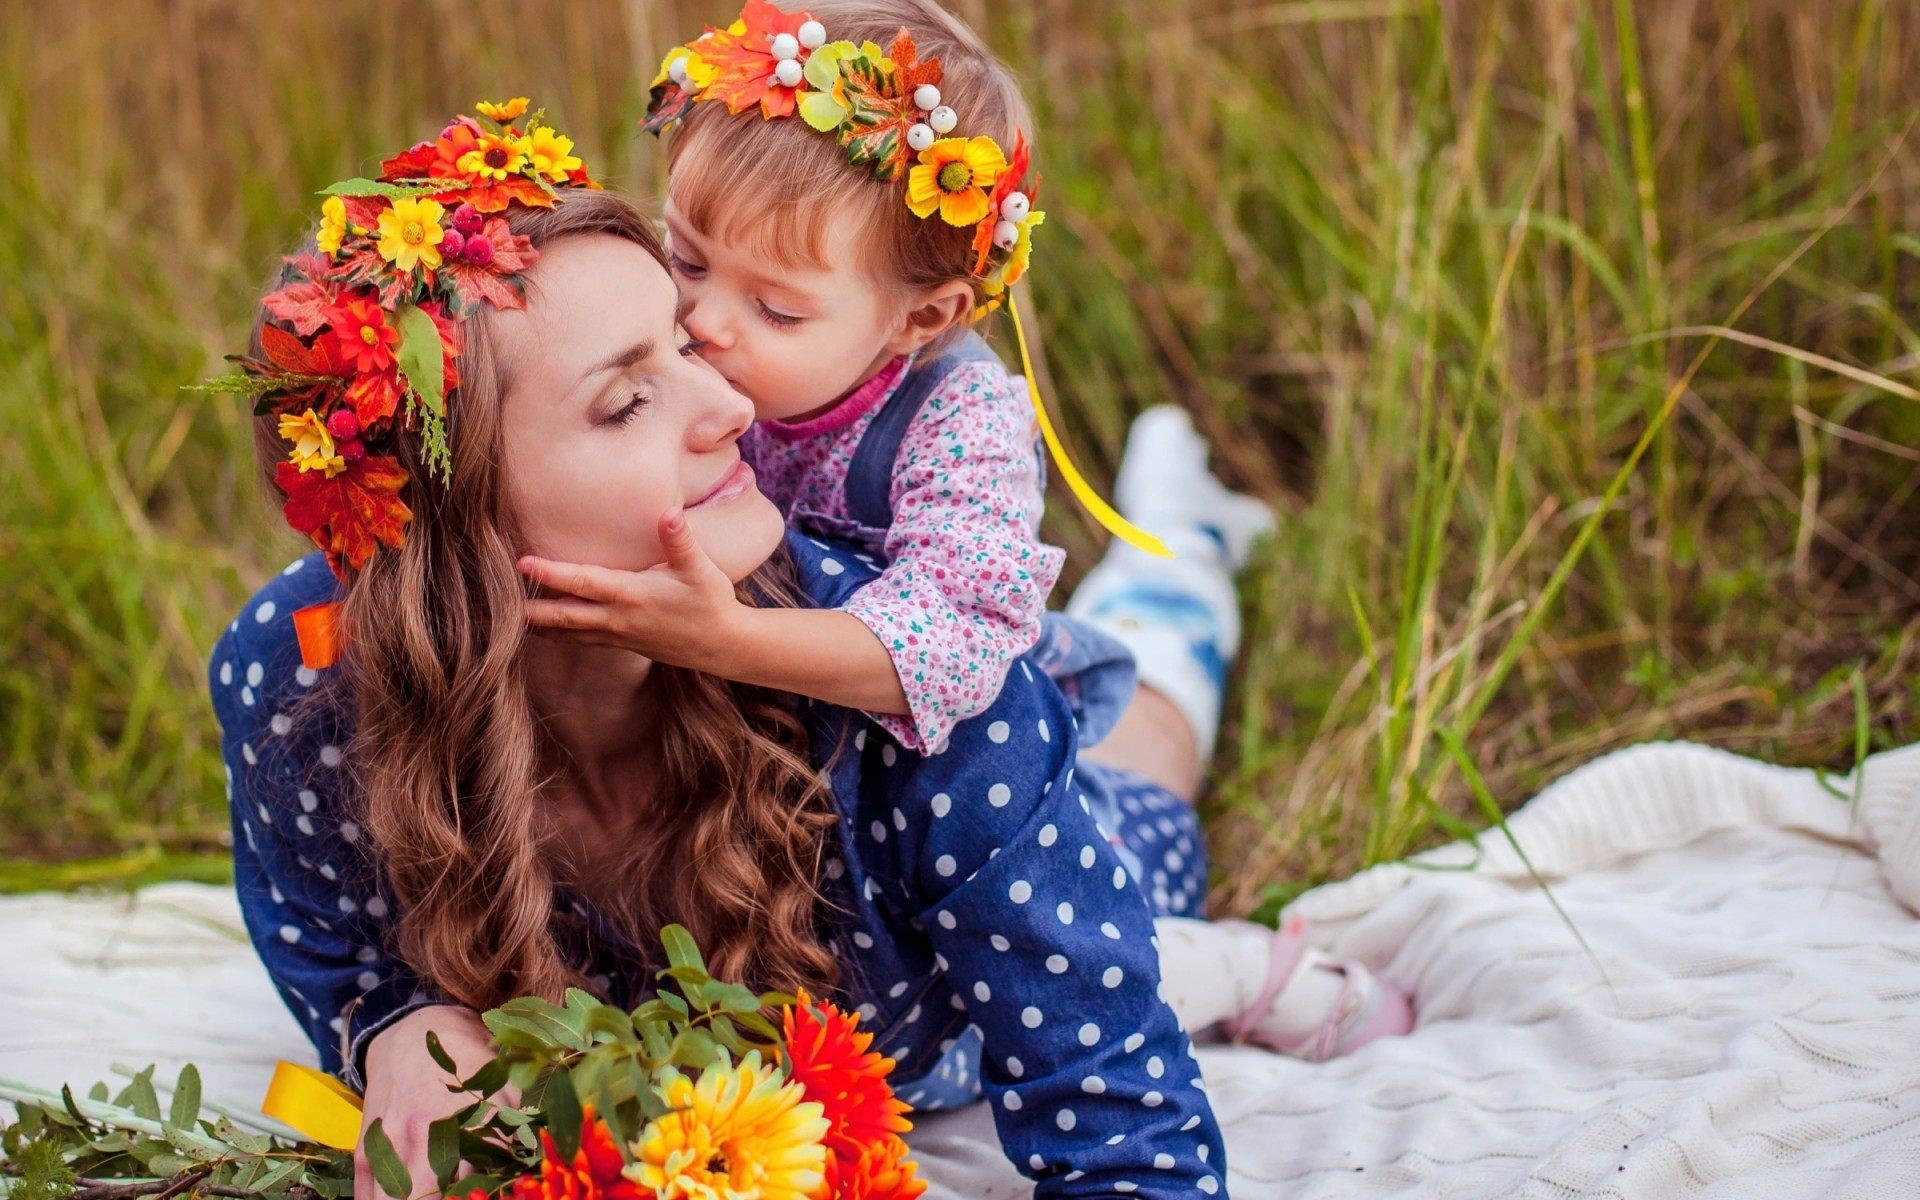 … mother daughter love wallpaper download of cute family …